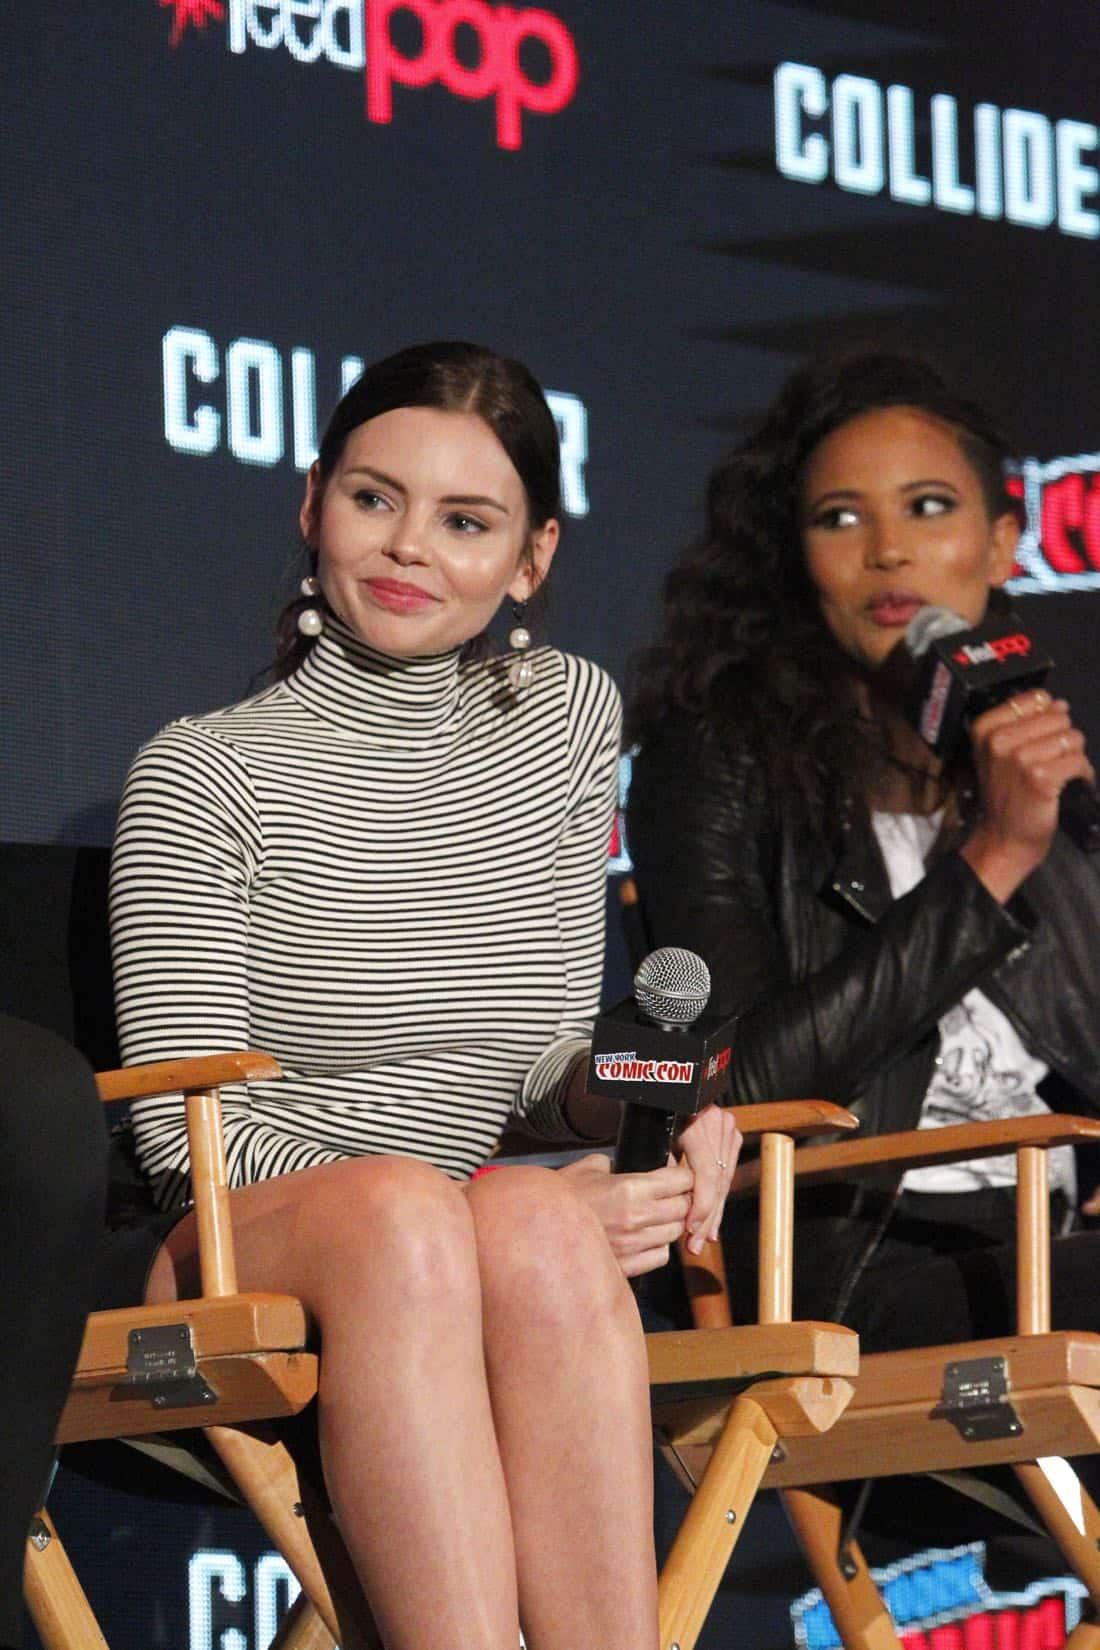 """NY COMIC-CON 2017 - SIREN - Freeform's genre programming was out in full force at this year's New York Comic Con on Saturday, October 7th with executive producers and cast from the hit series """"Shadowhunters,"""" """"Beyond,"""" and new original series """"Siren."""" (Freeform/Lou Rocco) ELINE POWELL, FOLA EVANS-AKINGBOLA"""